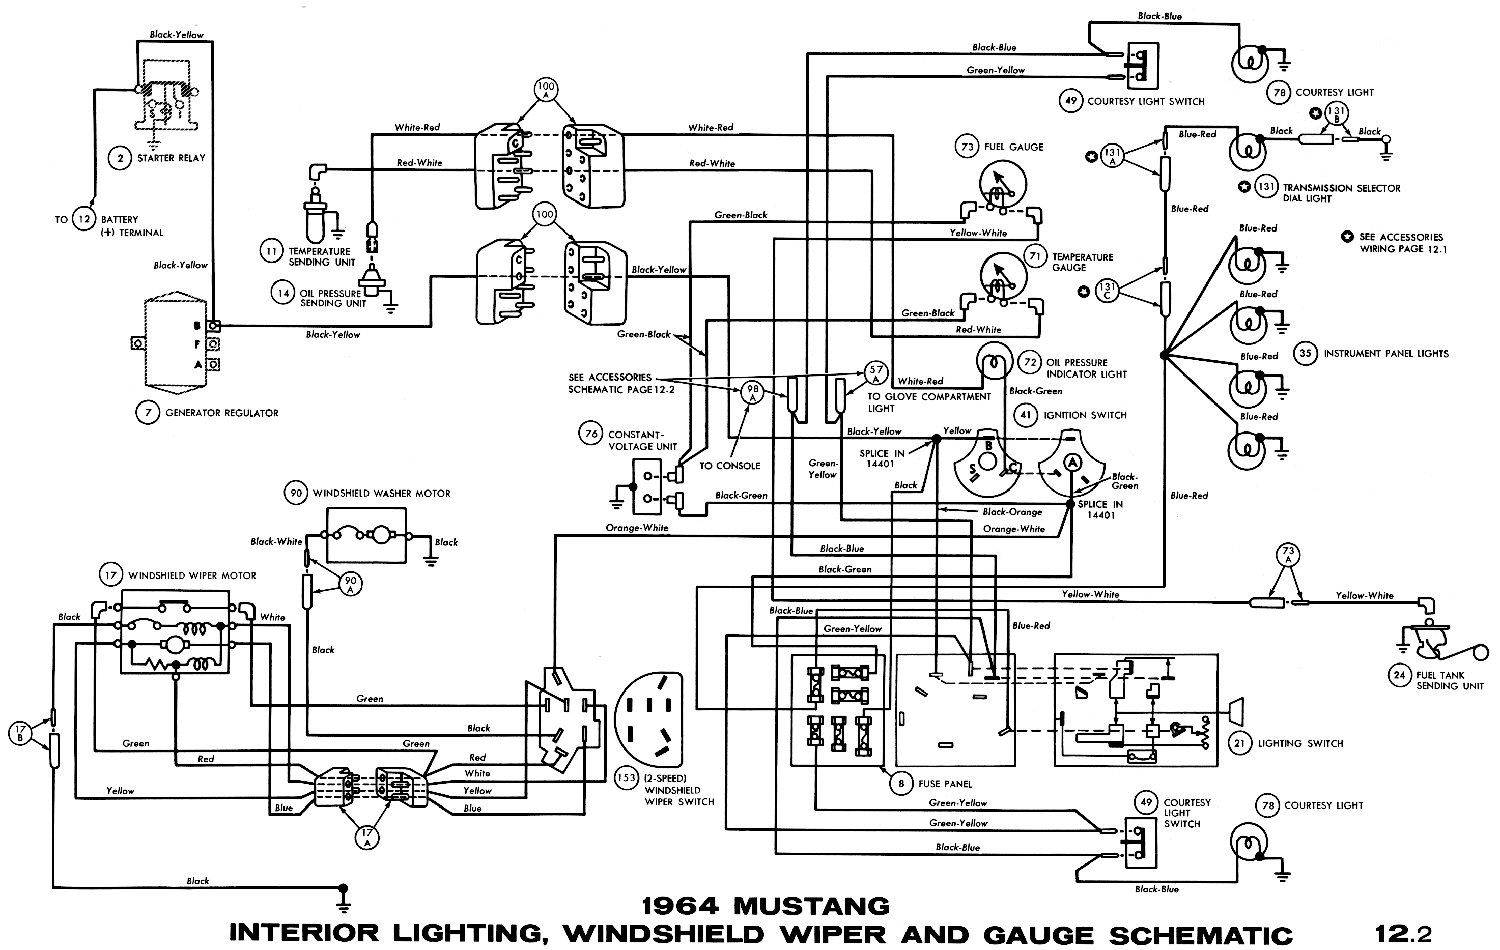 1976 Ford Mustang Radio Wiring Great Design Of Diagram 98 Gt Harness For 1970 Torino Get Free Explorer Stereo